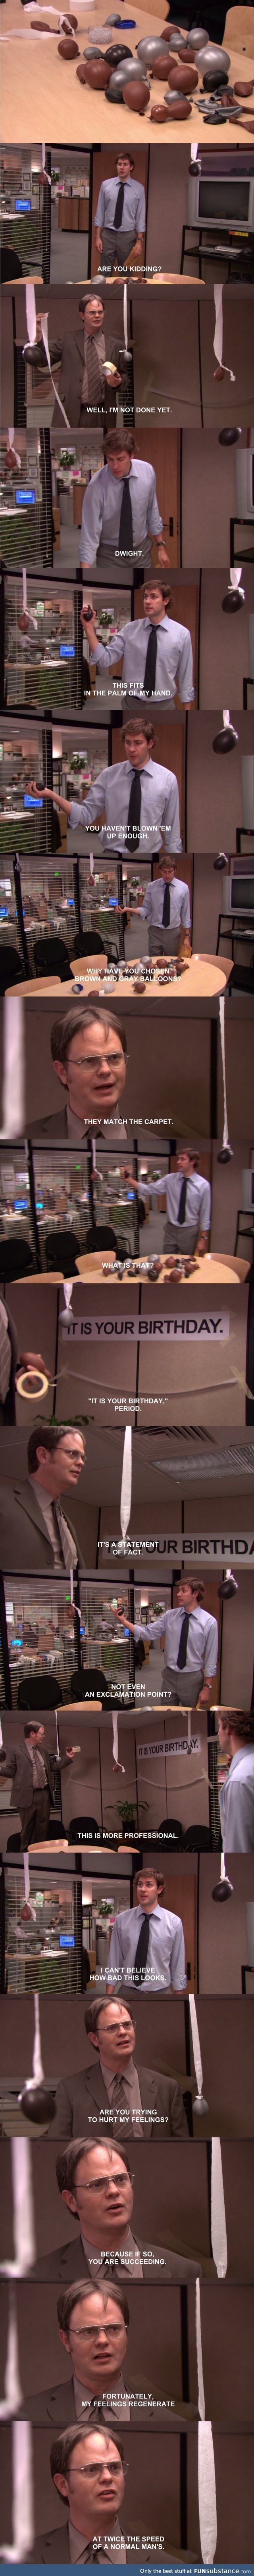 It is your birthday